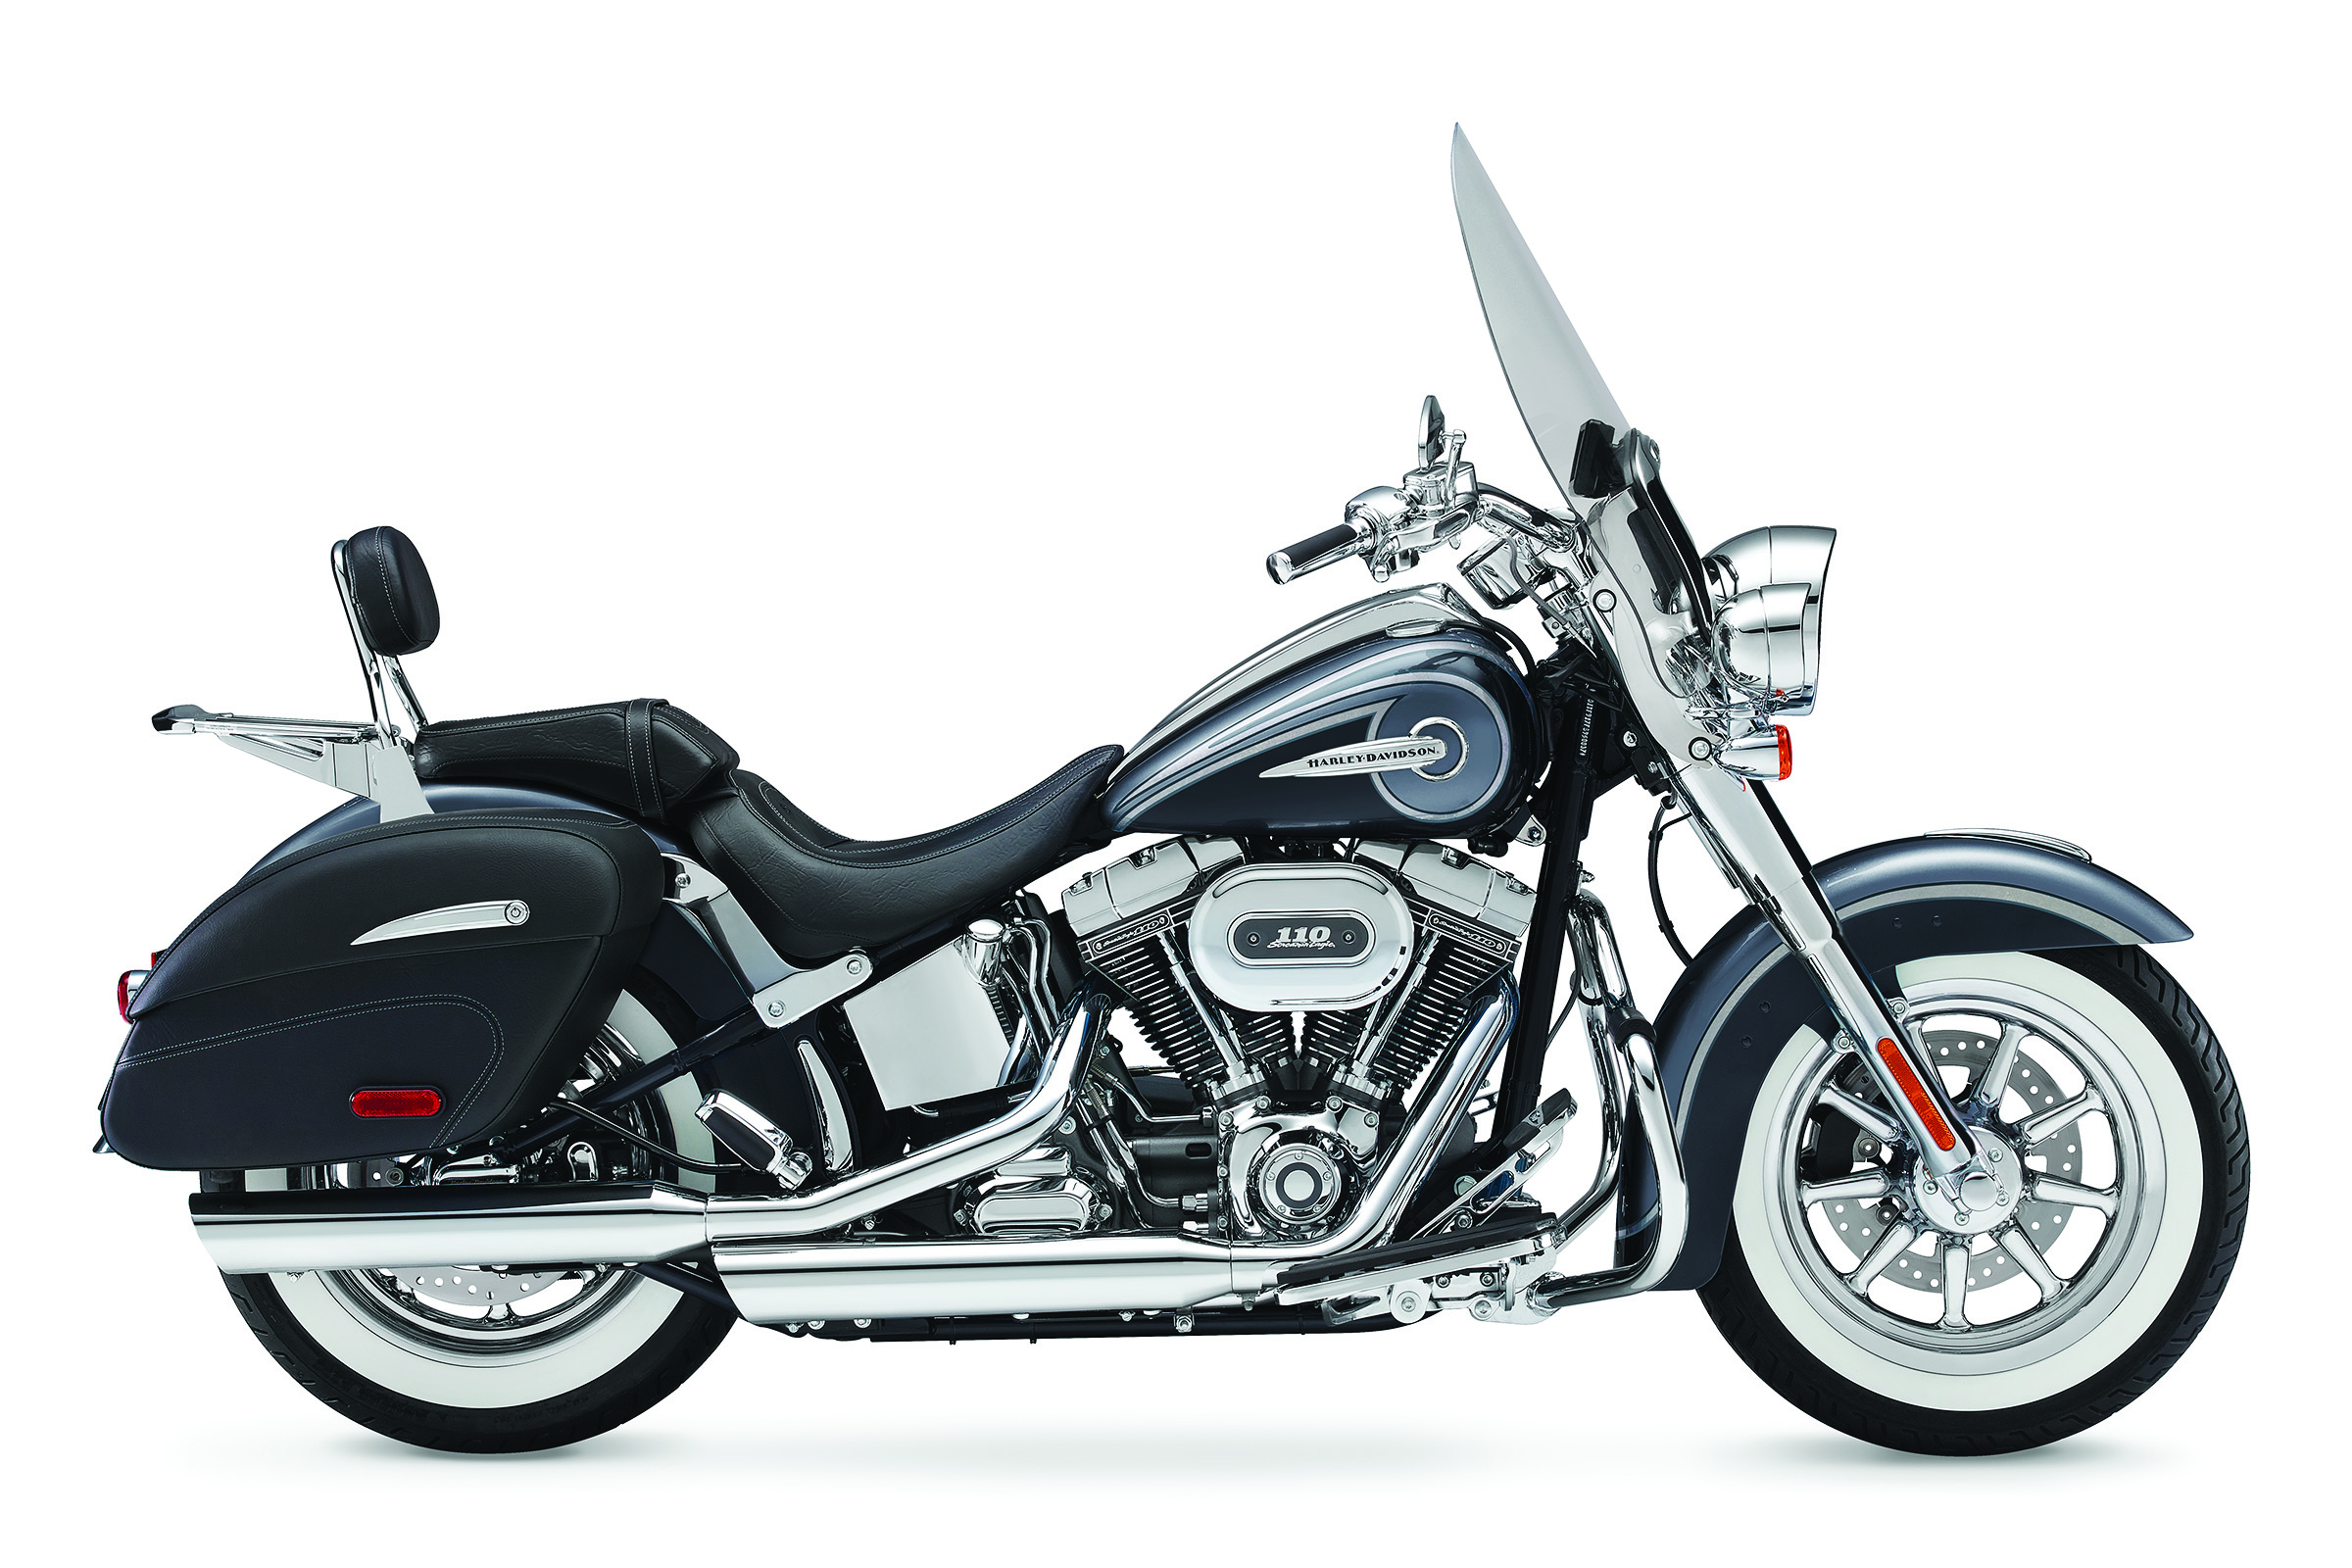 2015 Harley Davidson Cvo Lineup Revealed News